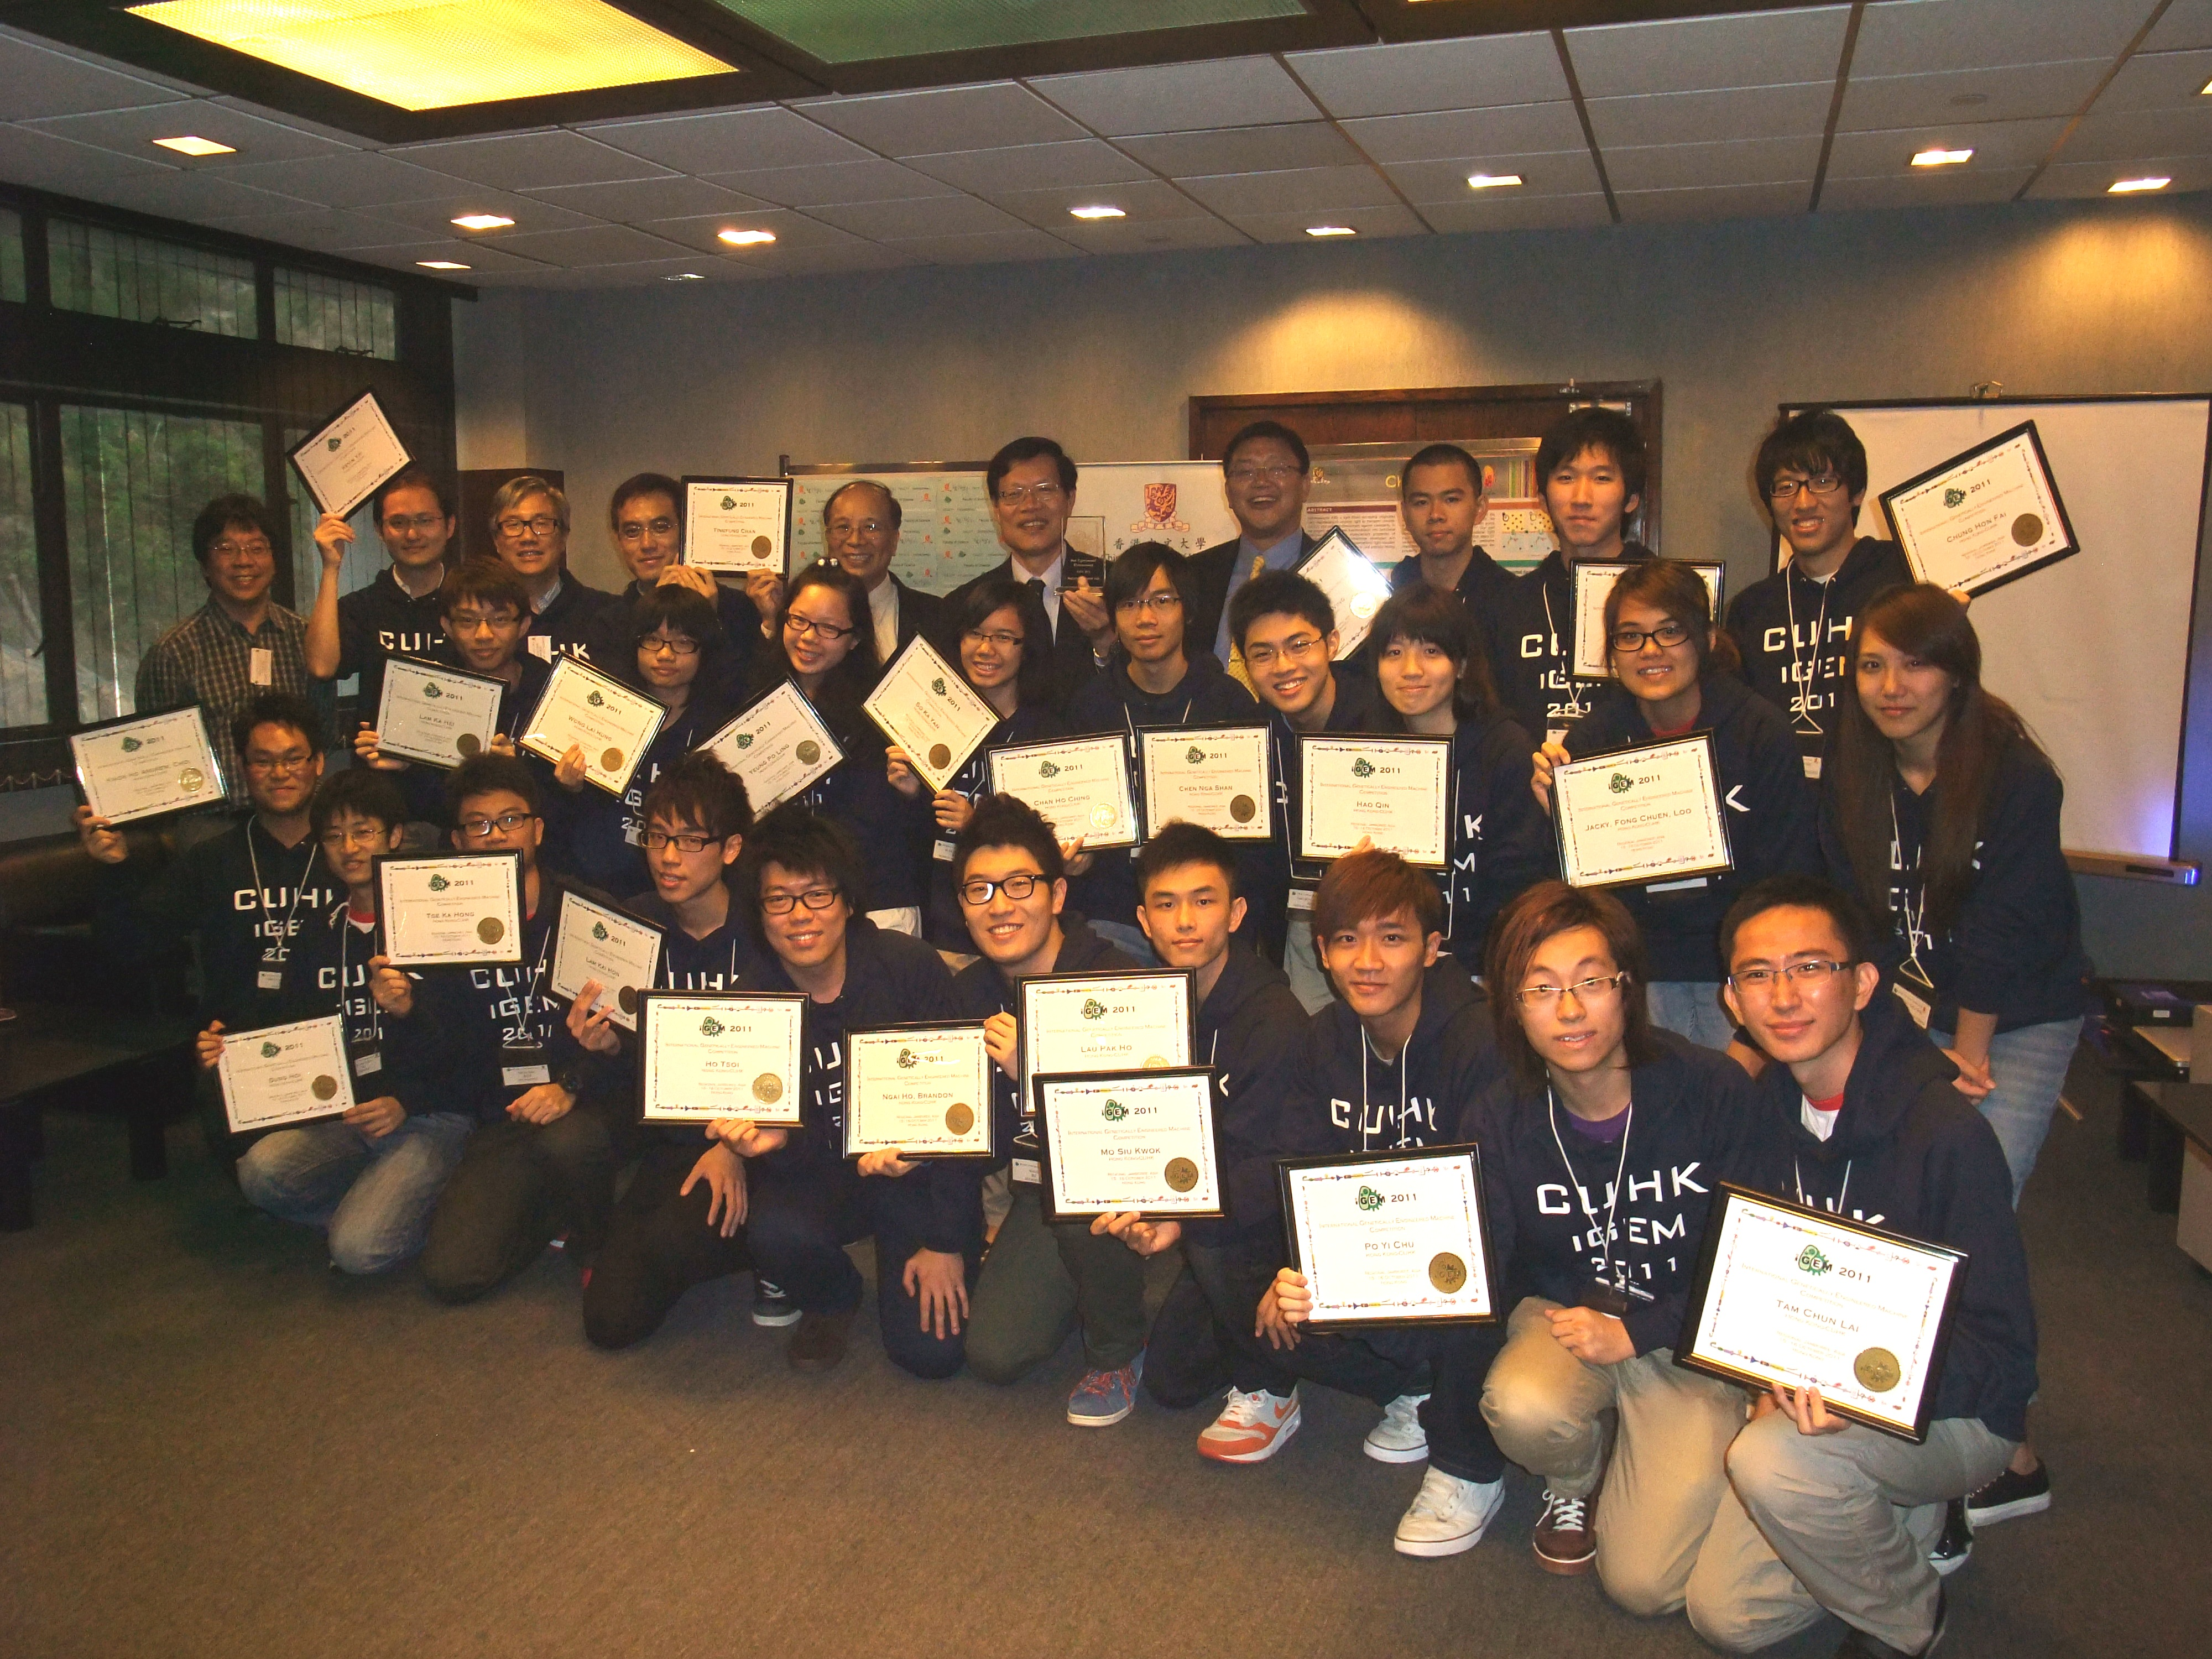 Prof. K.F. Wong, Associate Dean of Engineering; Prof. Ng Cheuk-yiu, Dean of Science; and Prof. Chu Ka-hou, Director of School of Life Sciences (4th right to 6th right, back row) present certificates to the winning students